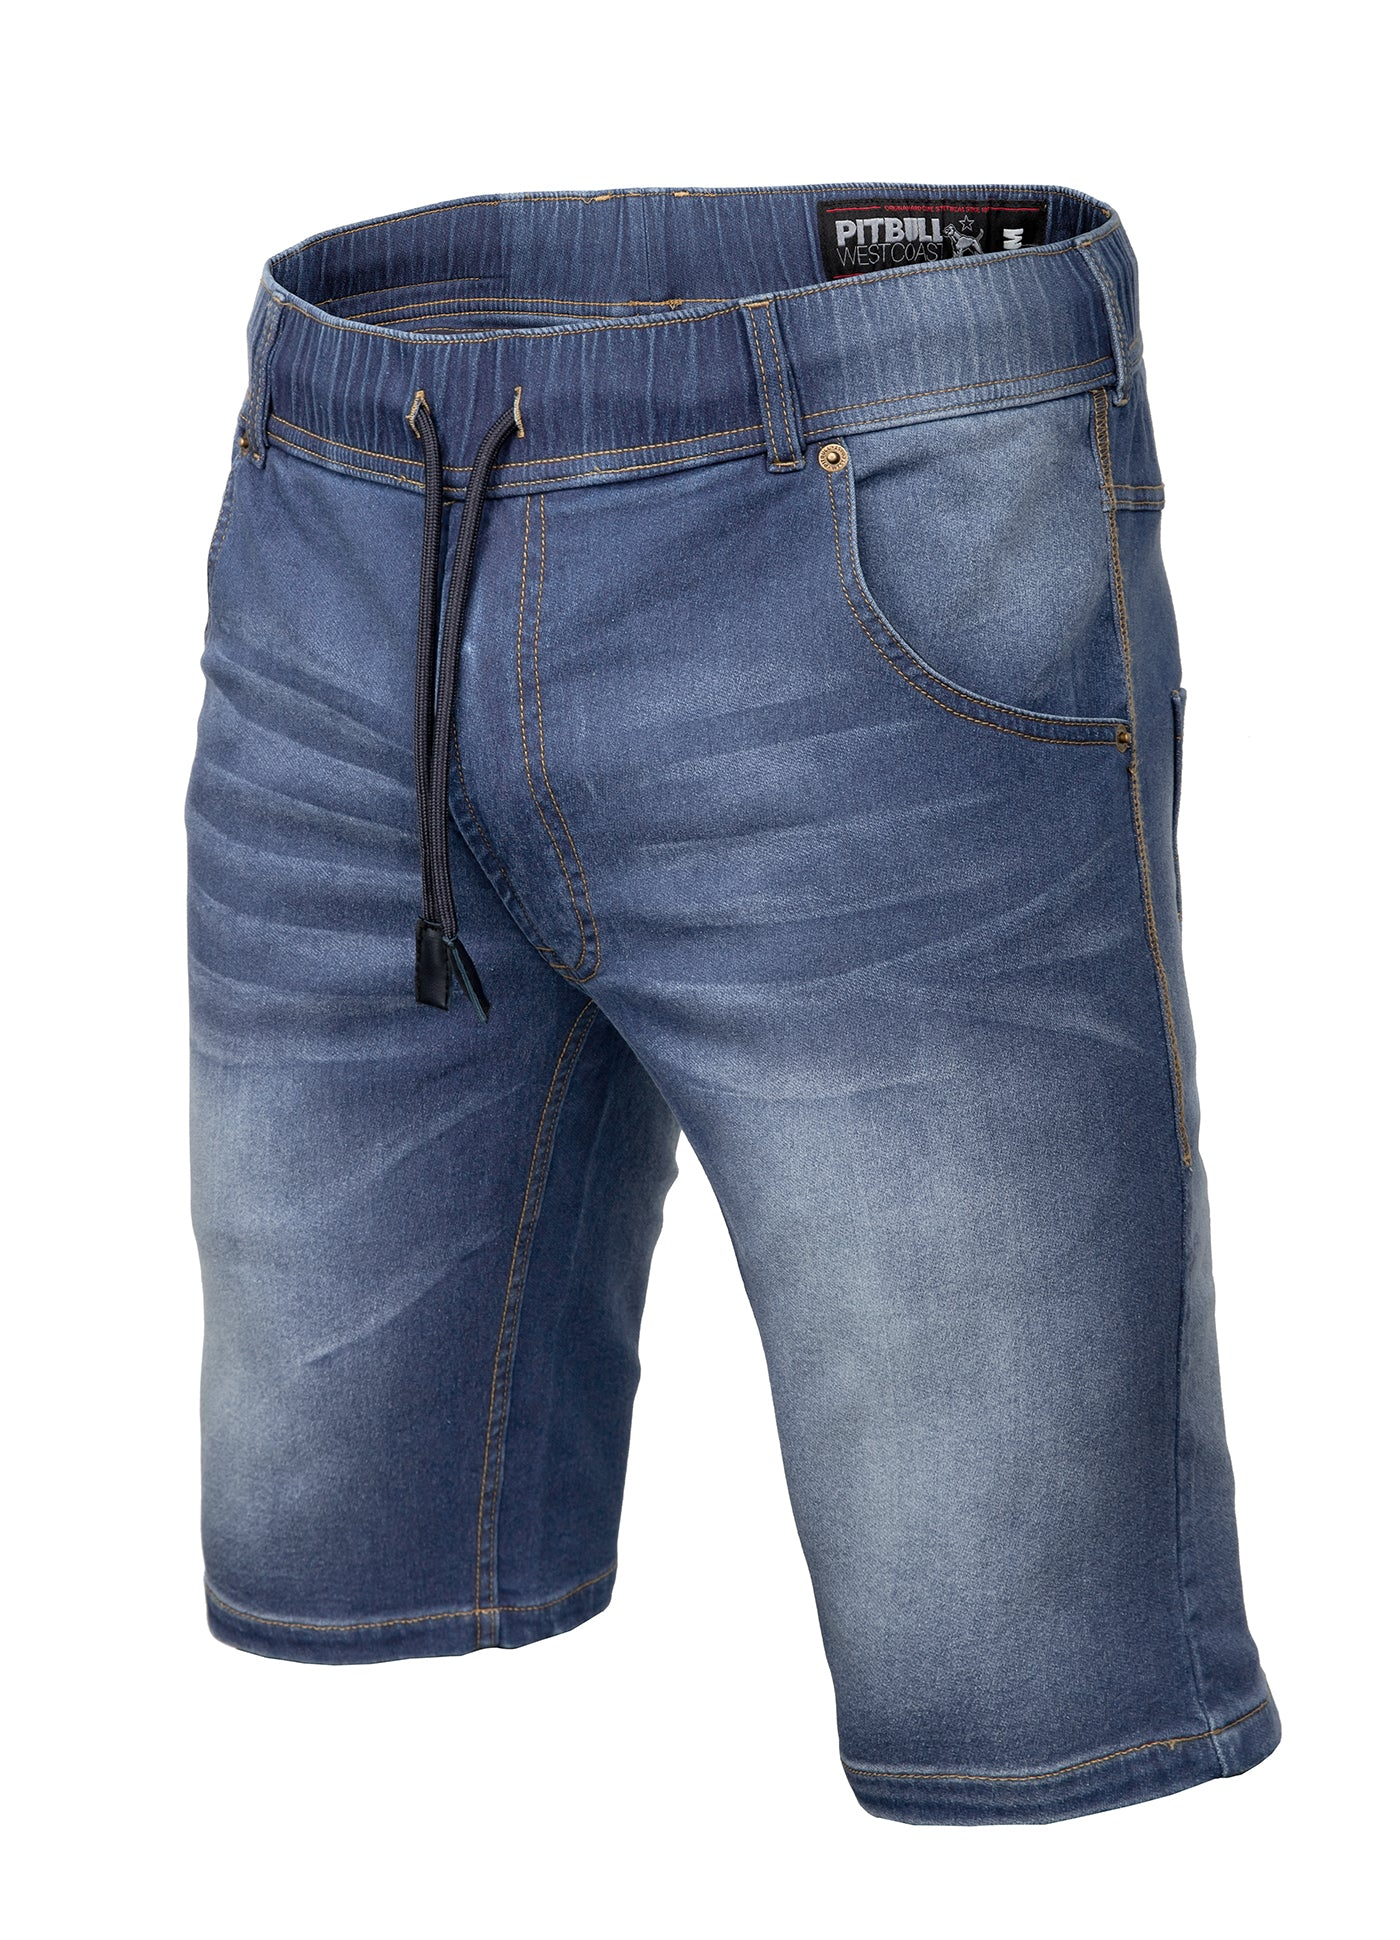 Denim Shorts BENNET Blue - pitbullwestcoast